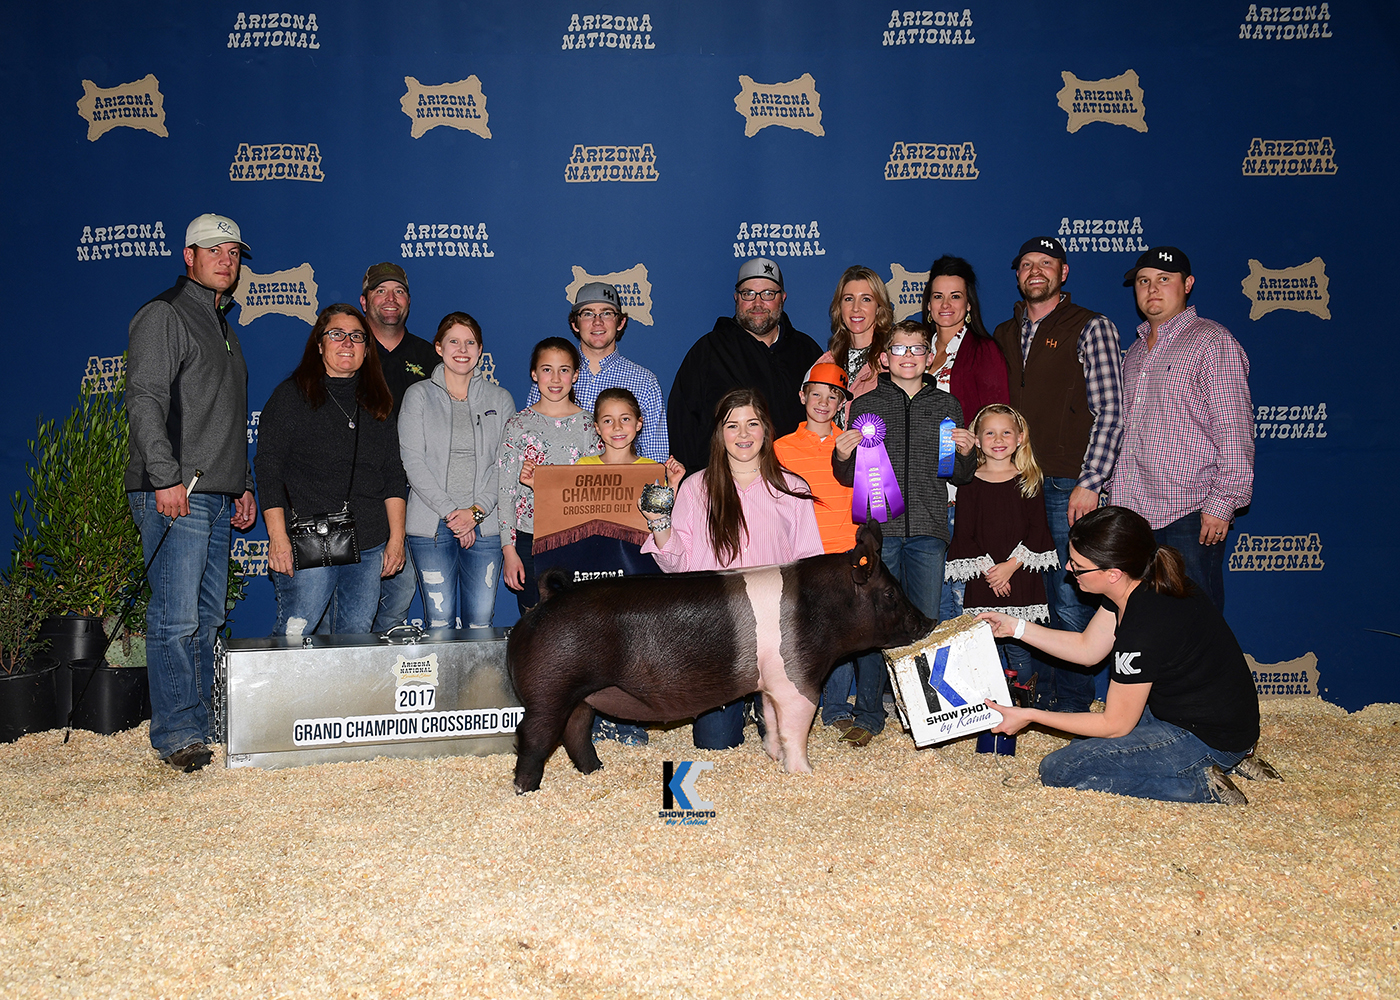 SUPREME_GILT_Ch_Crossbred_JrGilts_BE17-9-3879_1.jpg